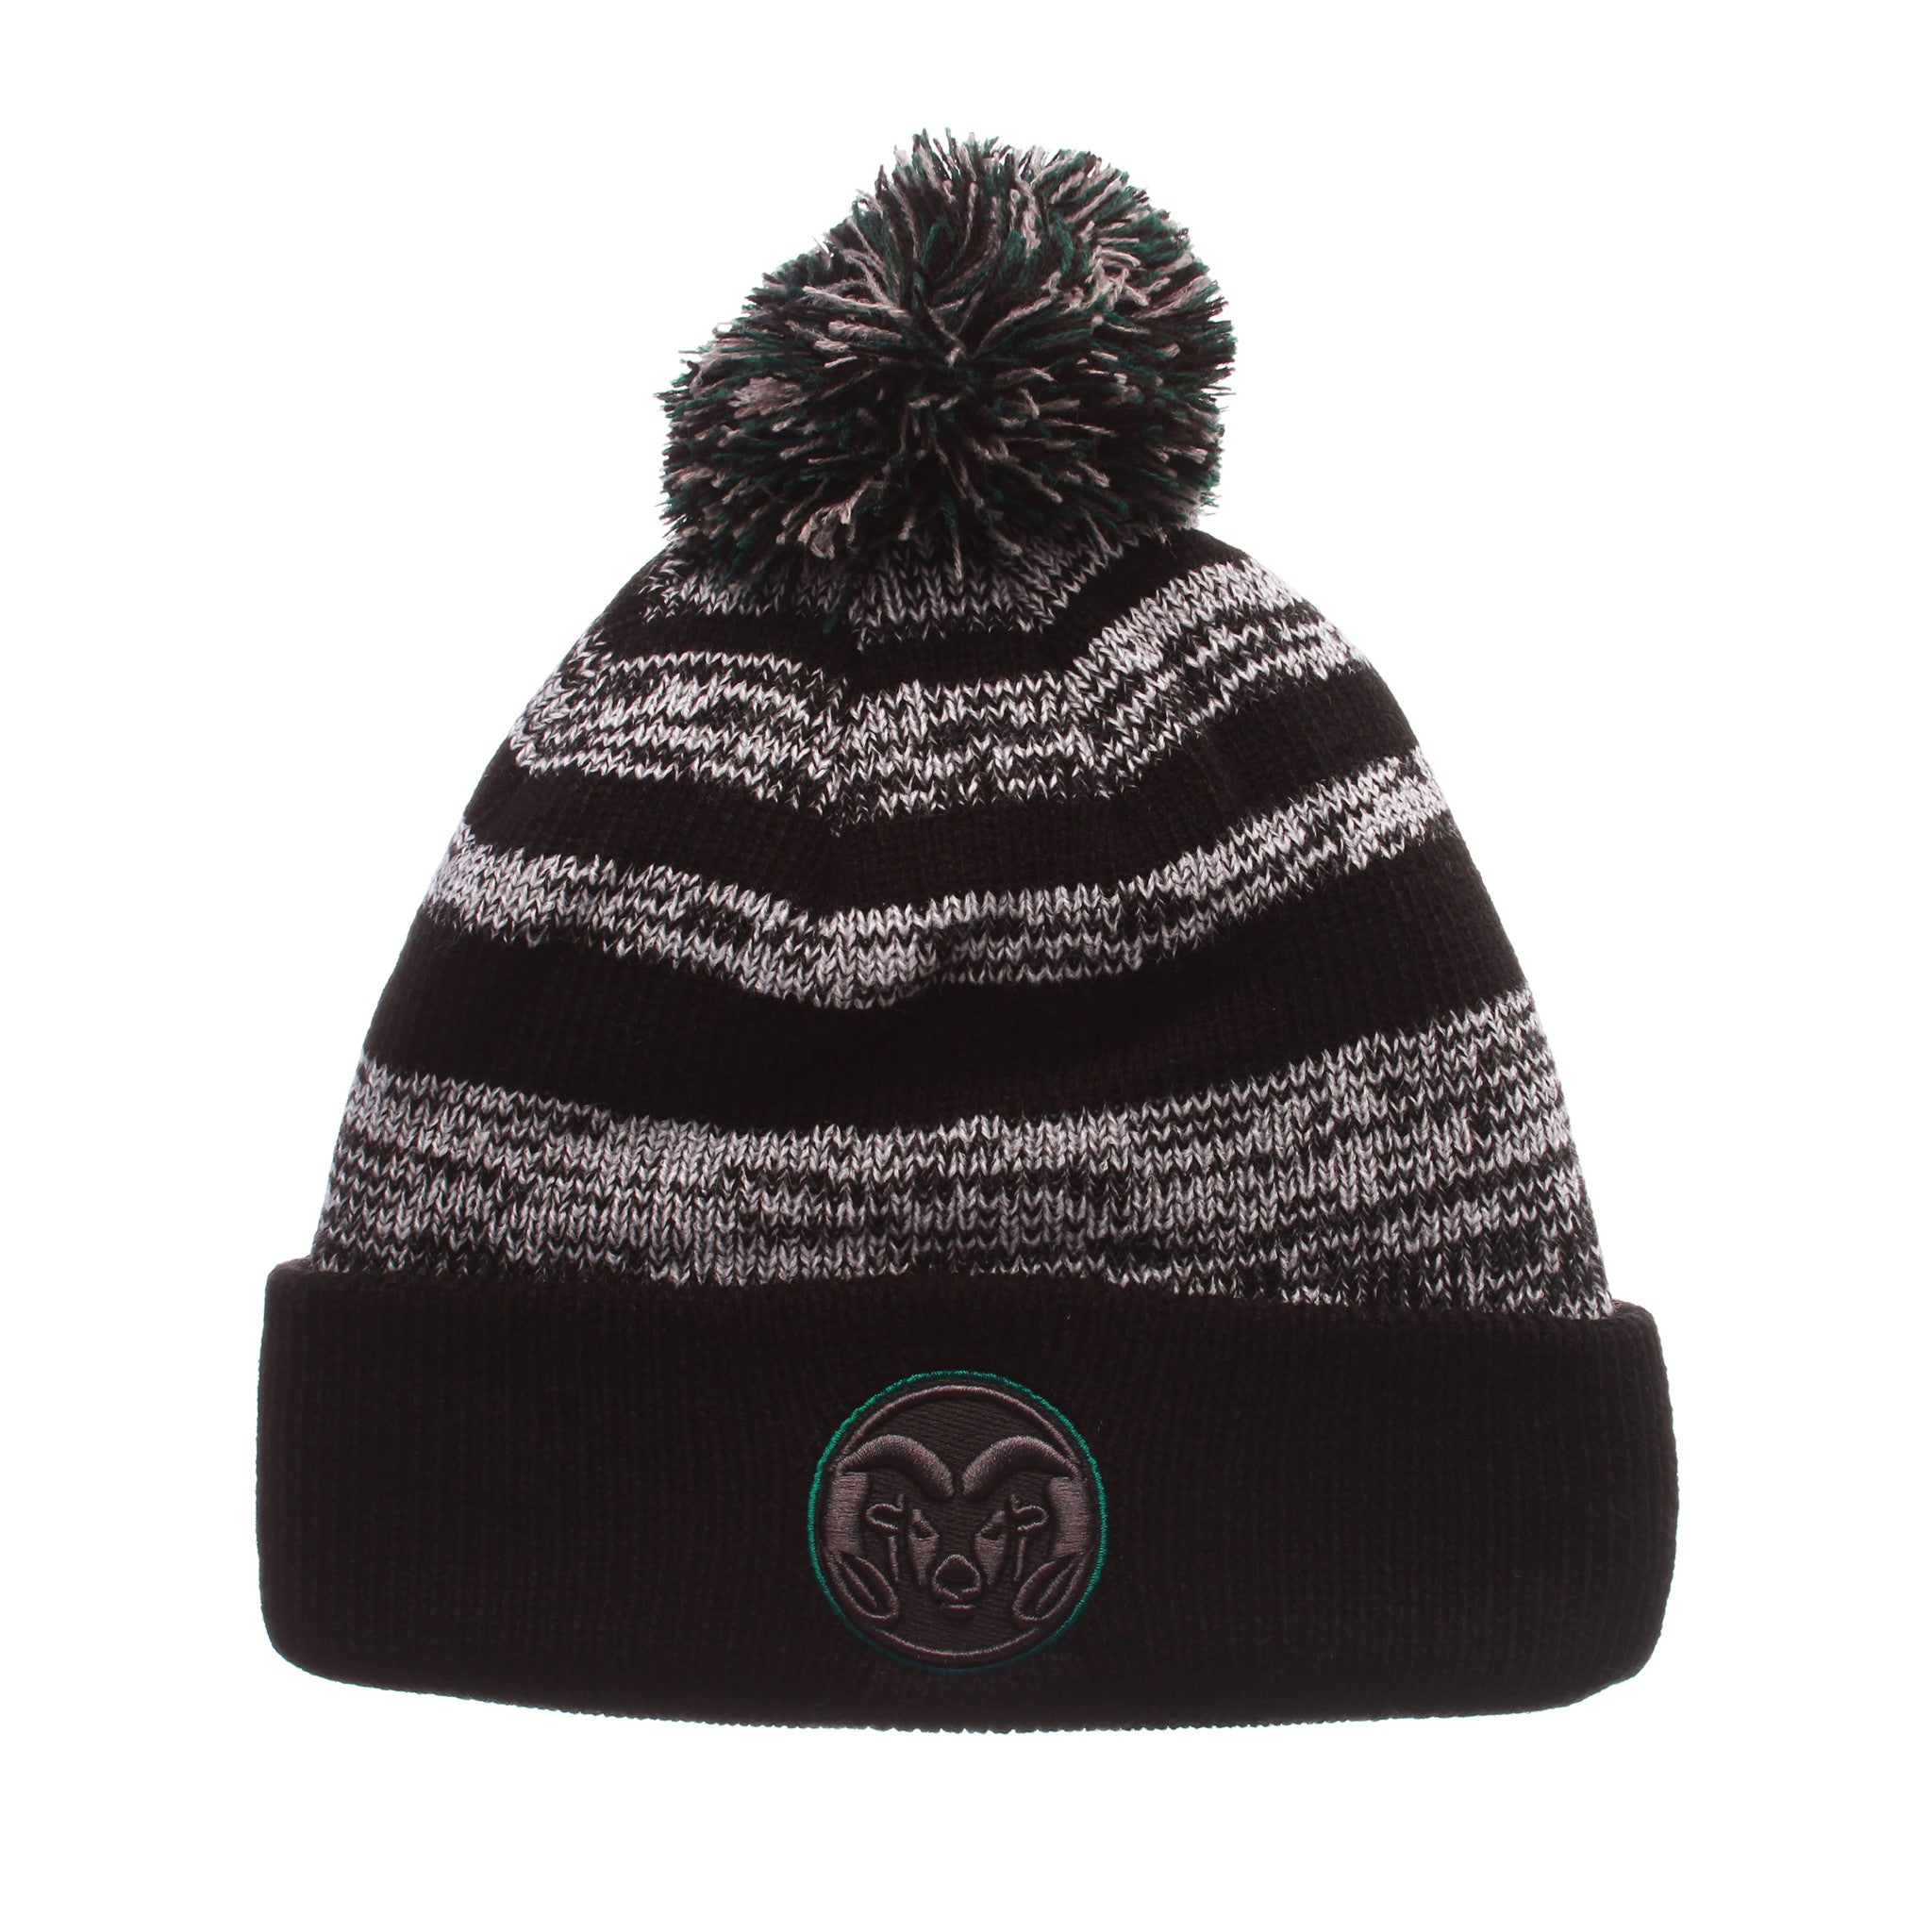 Colorado State University Black Baron Knit (Fold) (RAM CIRCLE LOGO) Black/White/Gray Confederate Knit Adjustable hats by Zephyr